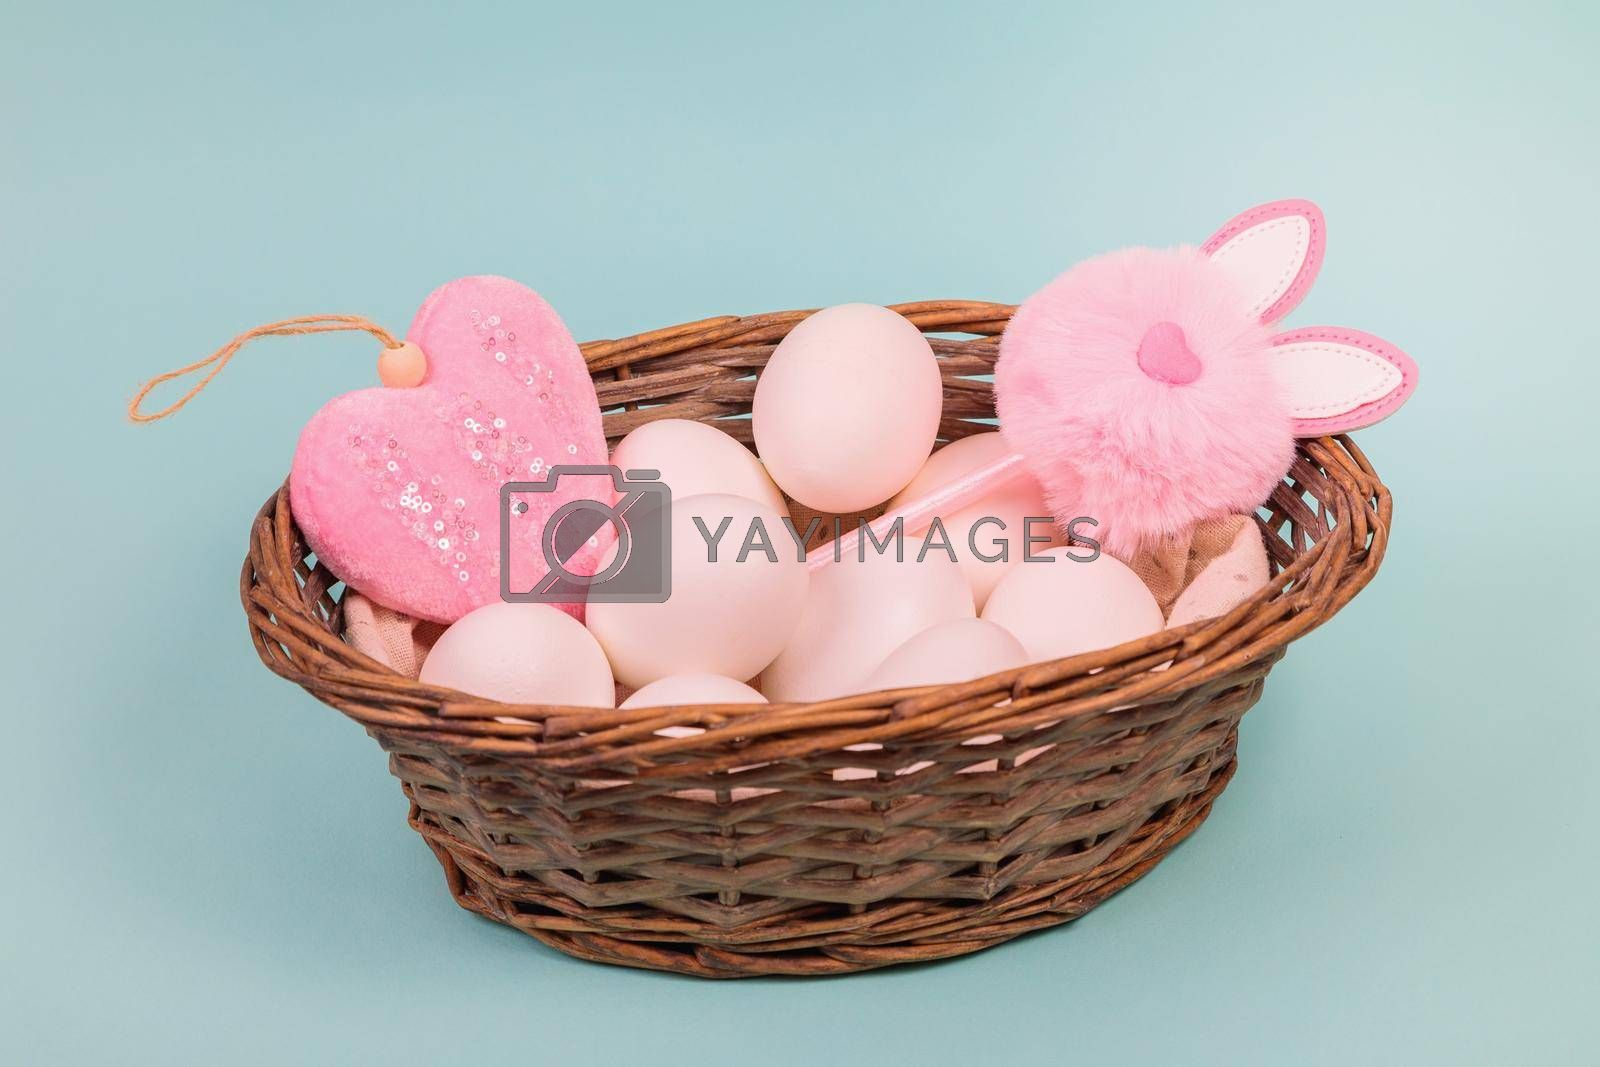 Easter. White eggs in a basket with an artificial rabbit, on a uniform blue background. Place for text.